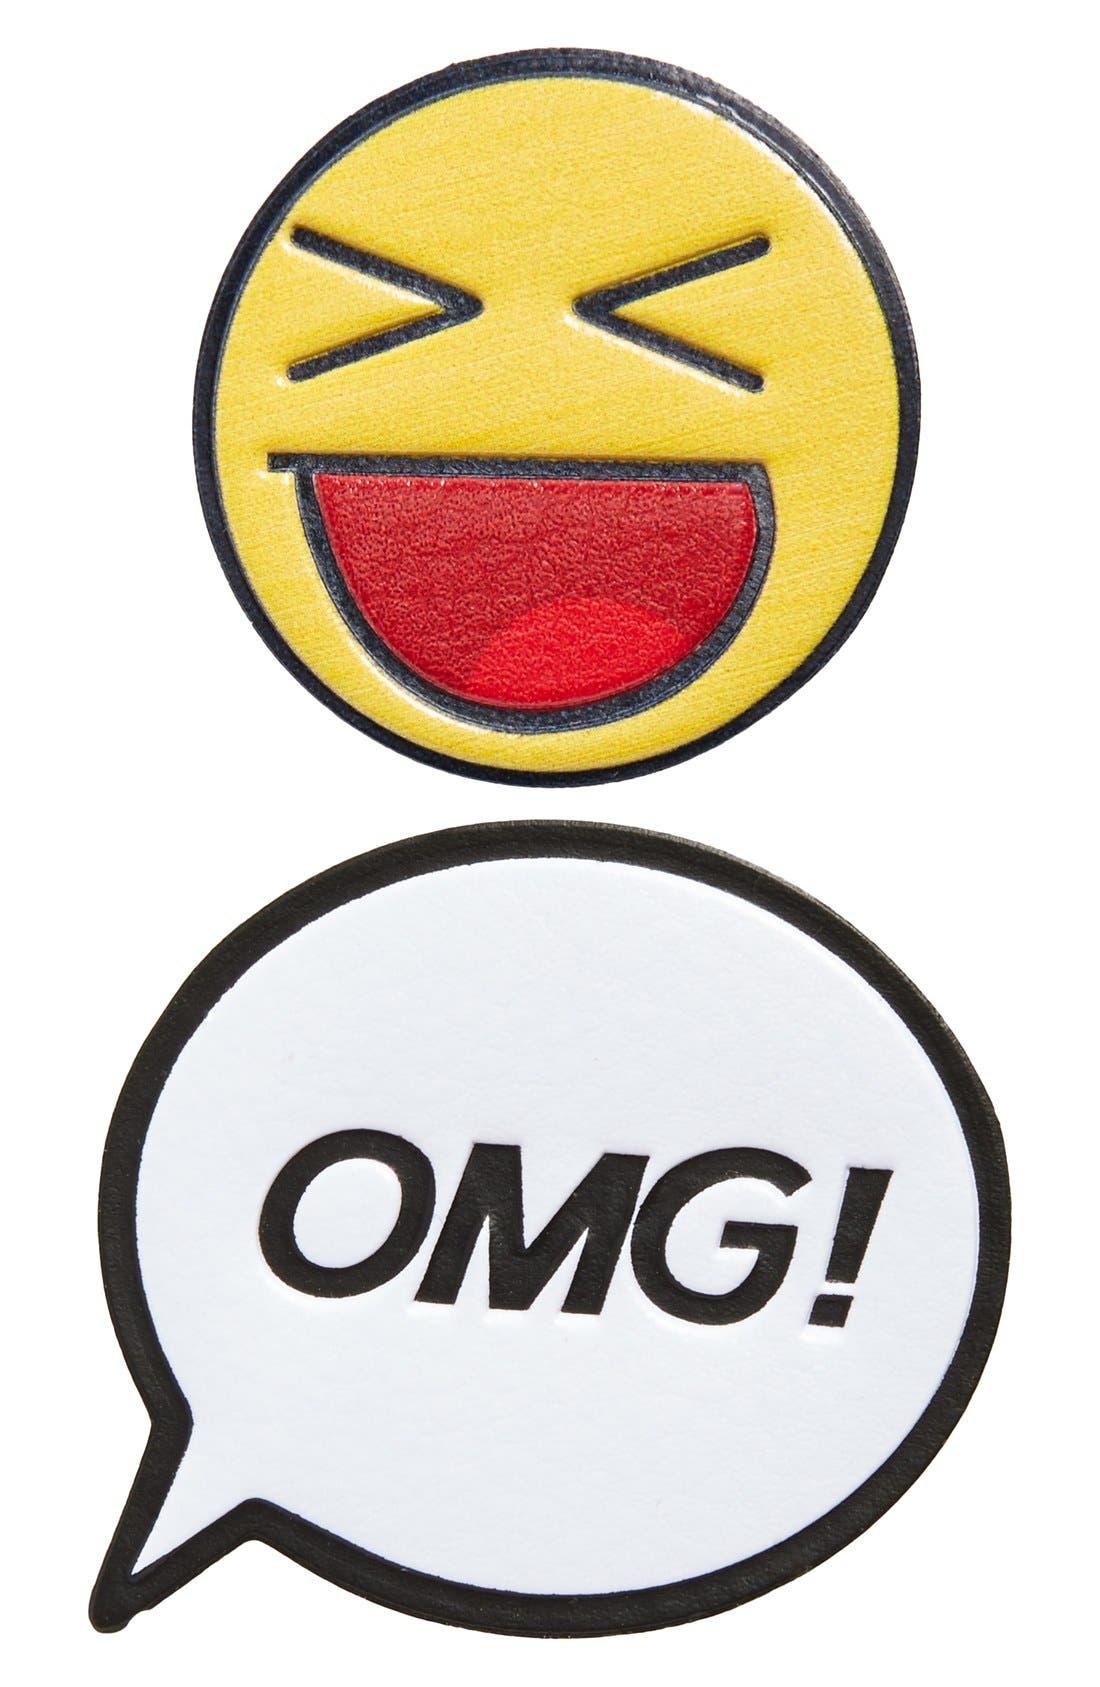 Alternate Image 1 Selected - Skinnydip 'OMG!' Plushie Stickers (Set of 2)